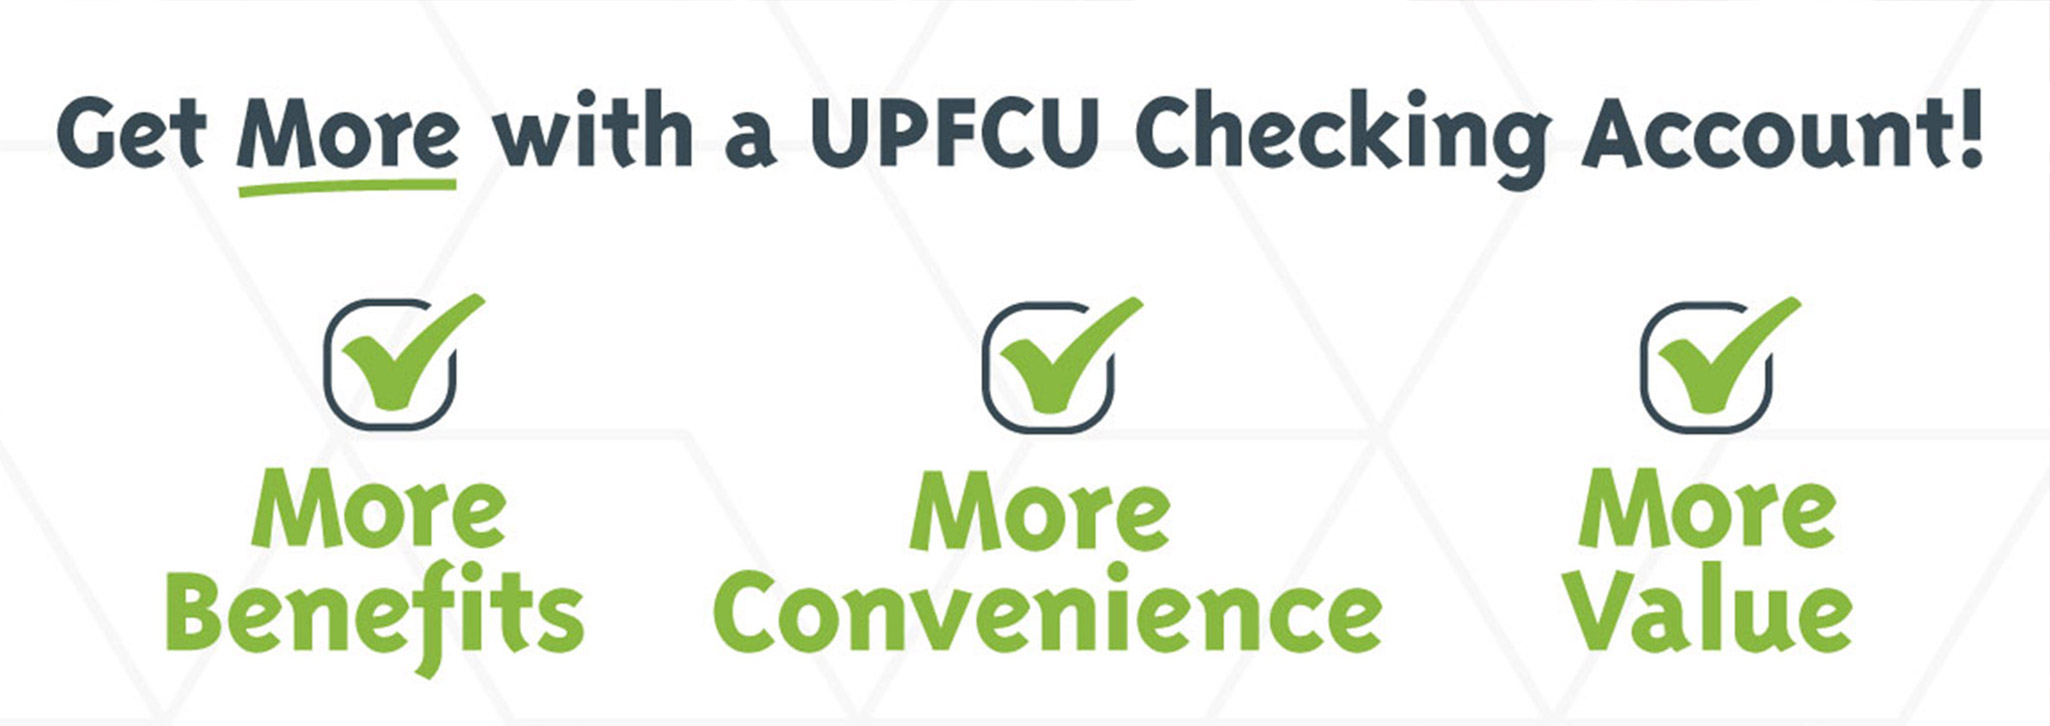 Get More With A UPFCU Checking Account. More Benefits. More Convenience. More Value.